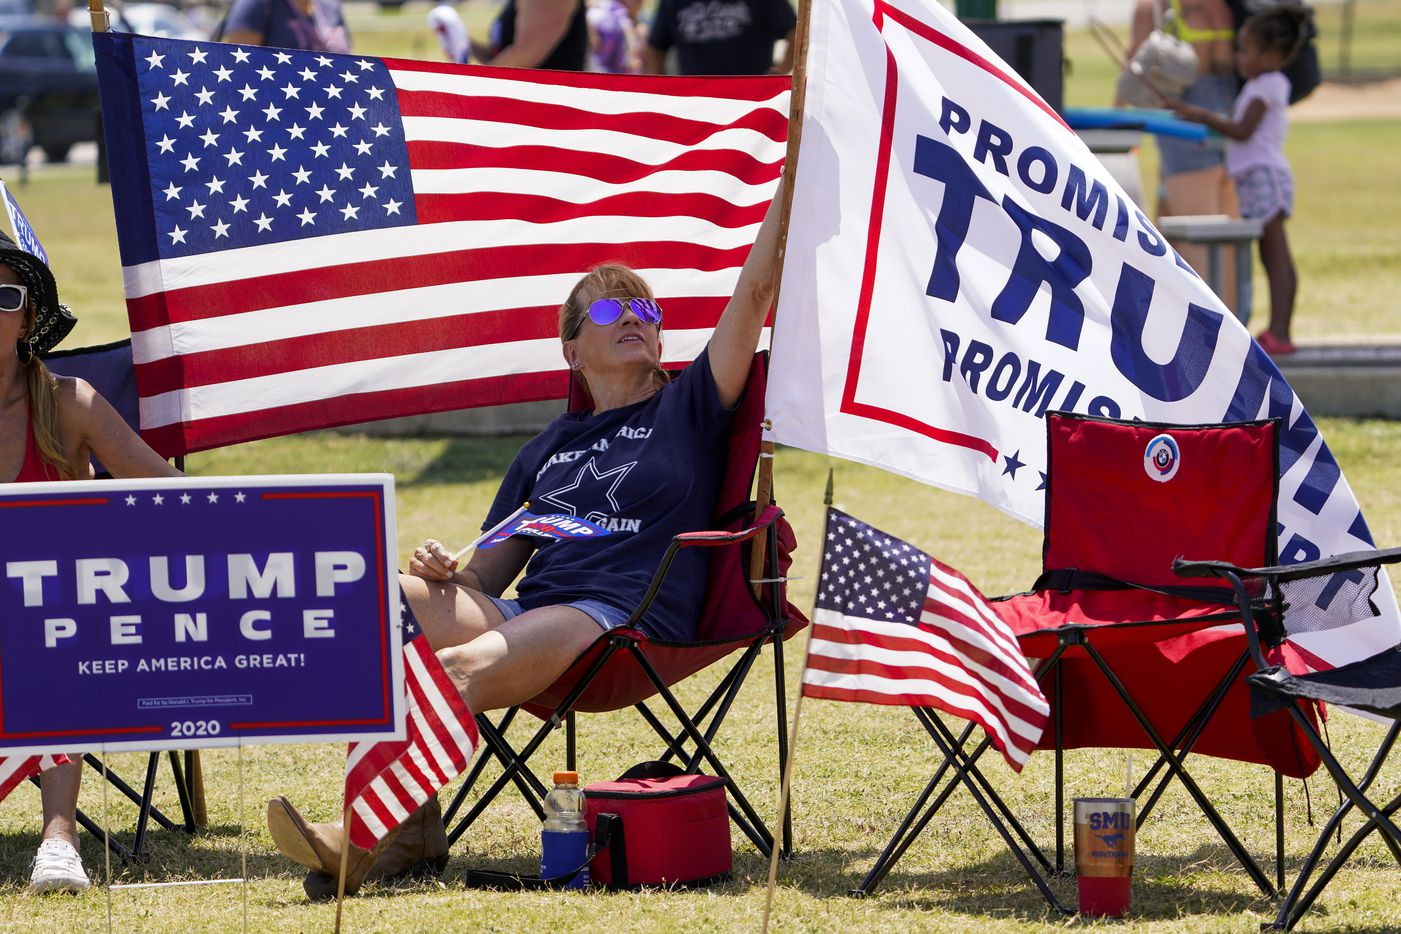 Supporters of President Donald Trump attend a campaign rally and boat parade at Oak Grove Park on Grapevine Lake on Saturday, Aug. 15, 2020.